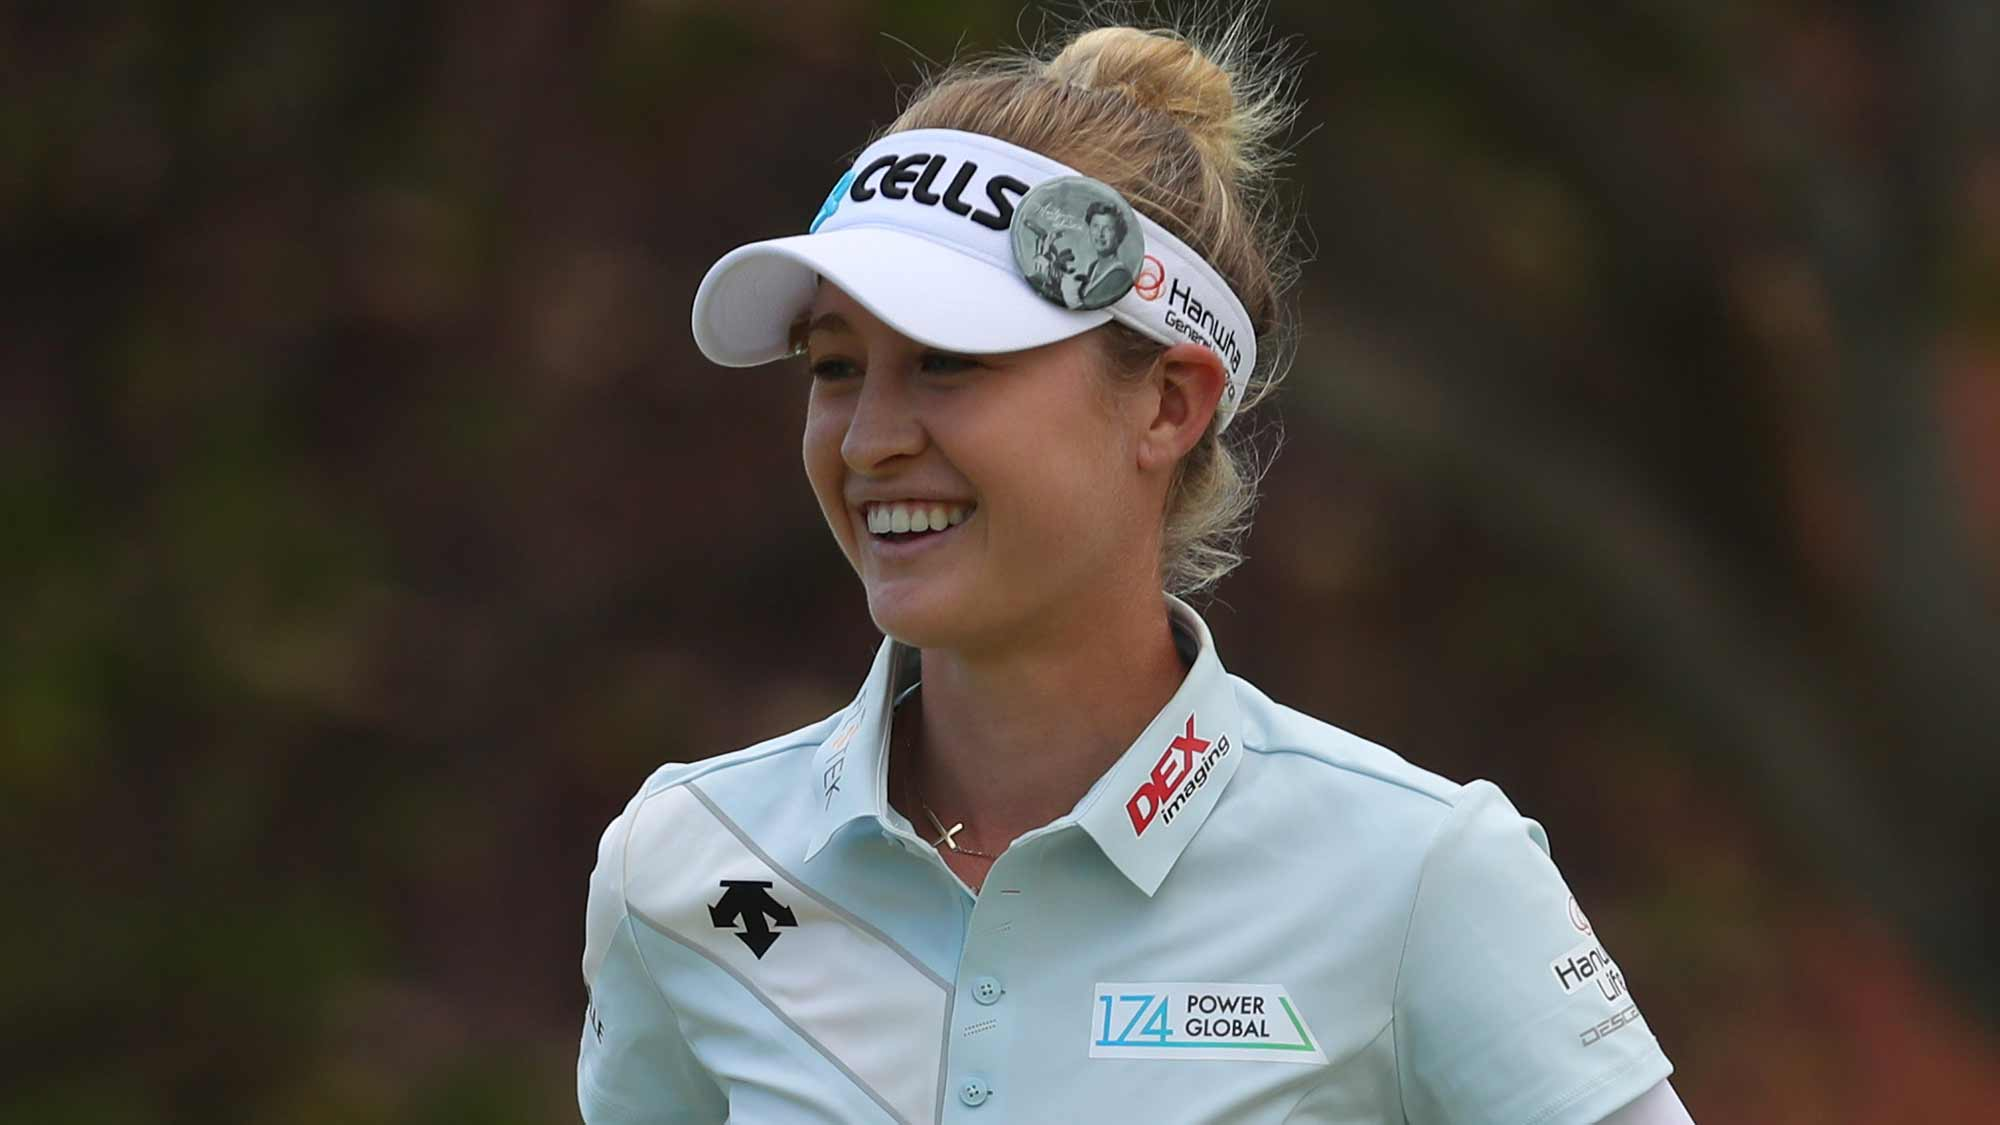 Nelly Korda smiles after finishing her second round of the LOTTE Championship on April 19, 2019 in Kapolei, Hawaii